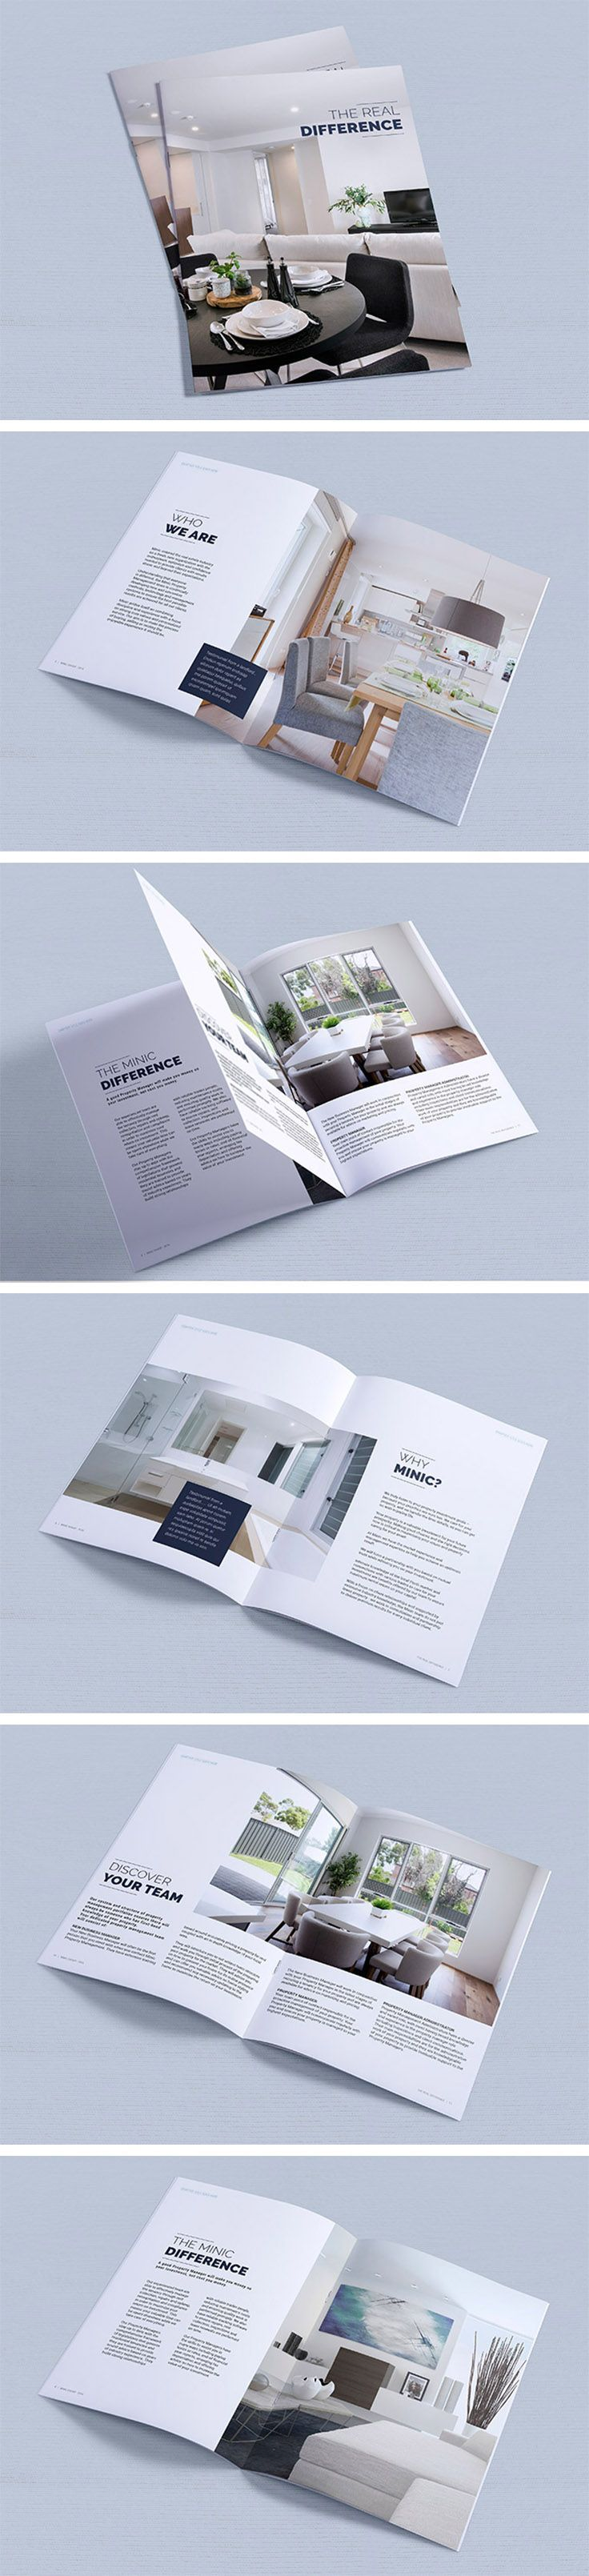 Real Estate Brochure Flyer Layout A  Grid Property Development